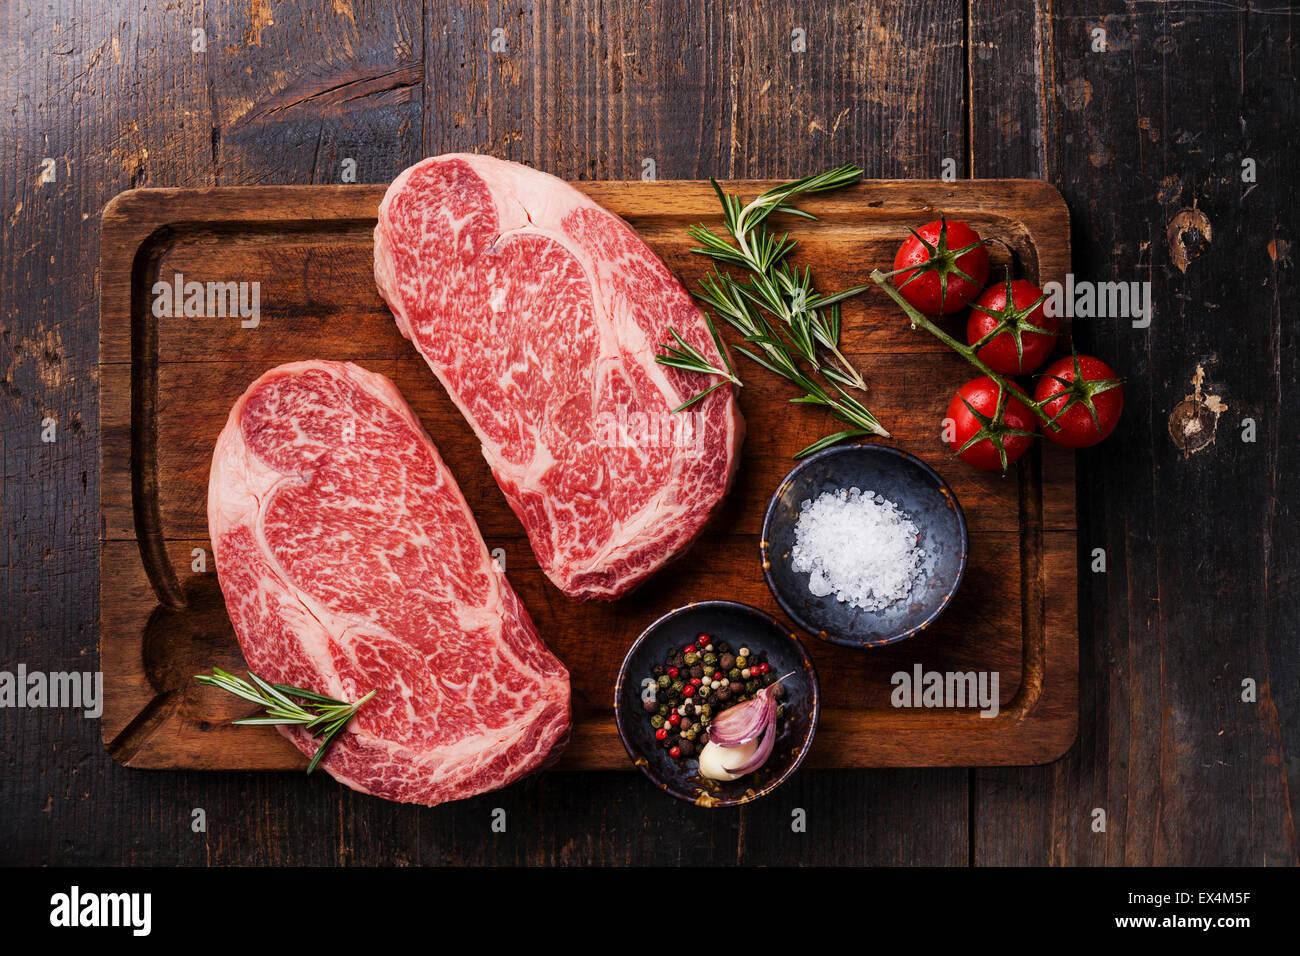 Beef Stock Kaufen Two Raw Fresh Marbled Meat Black Angus Steak Ribeye And Seasonings